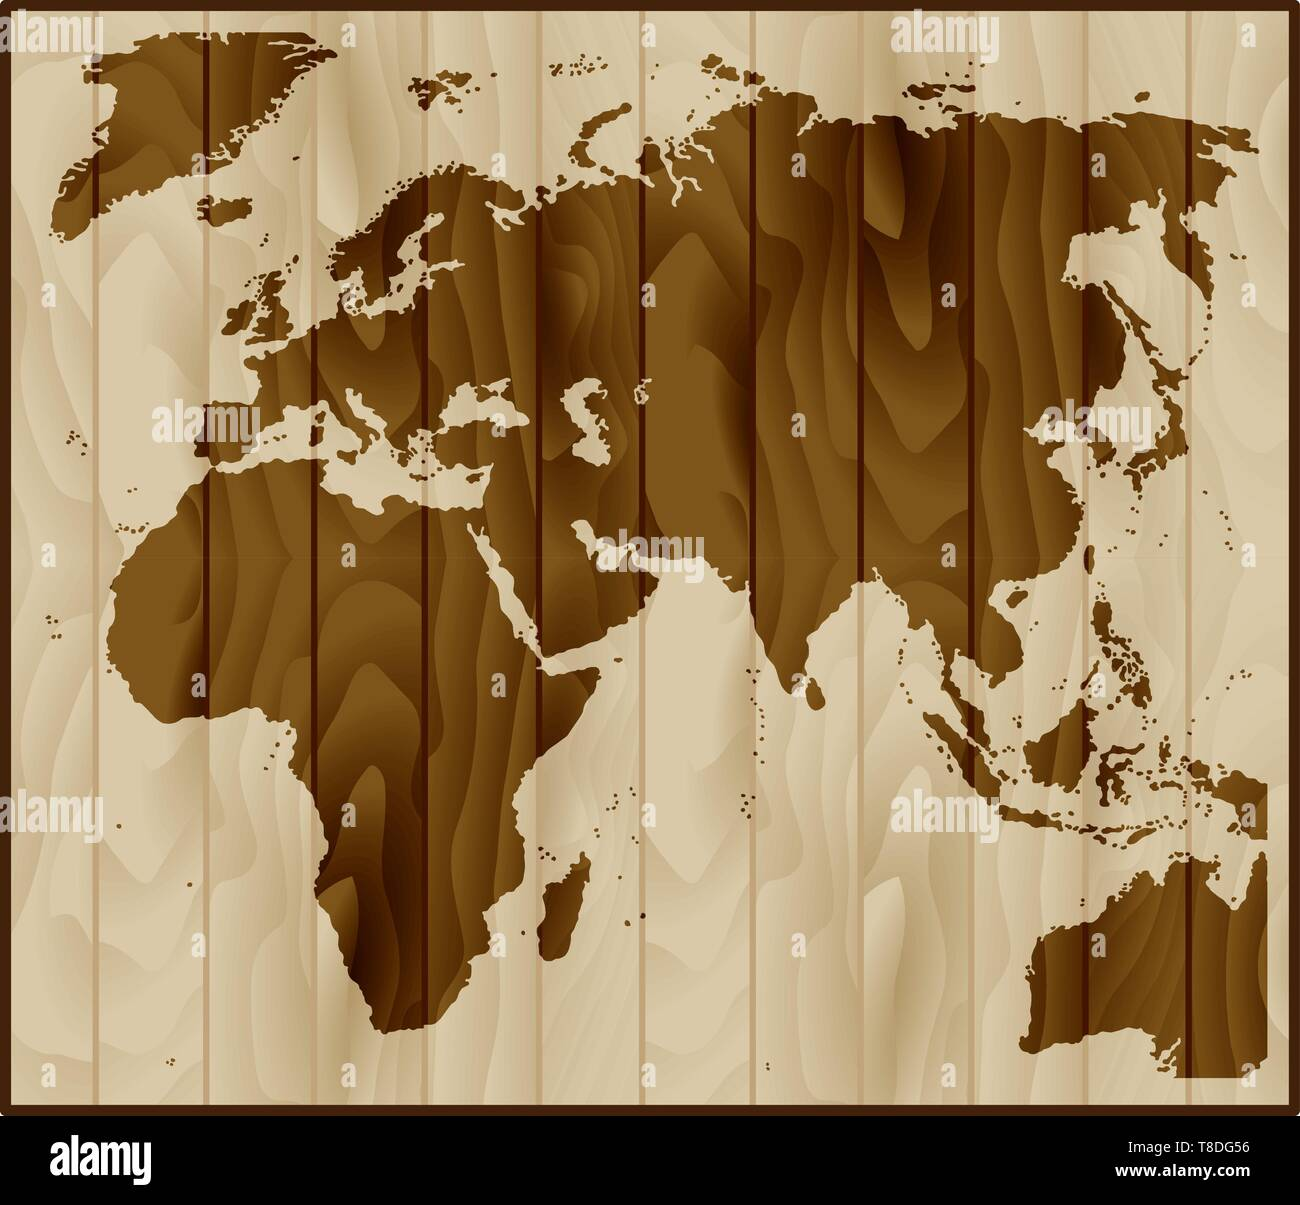 Europe, Asia and Africa map on wood background - Stock Image